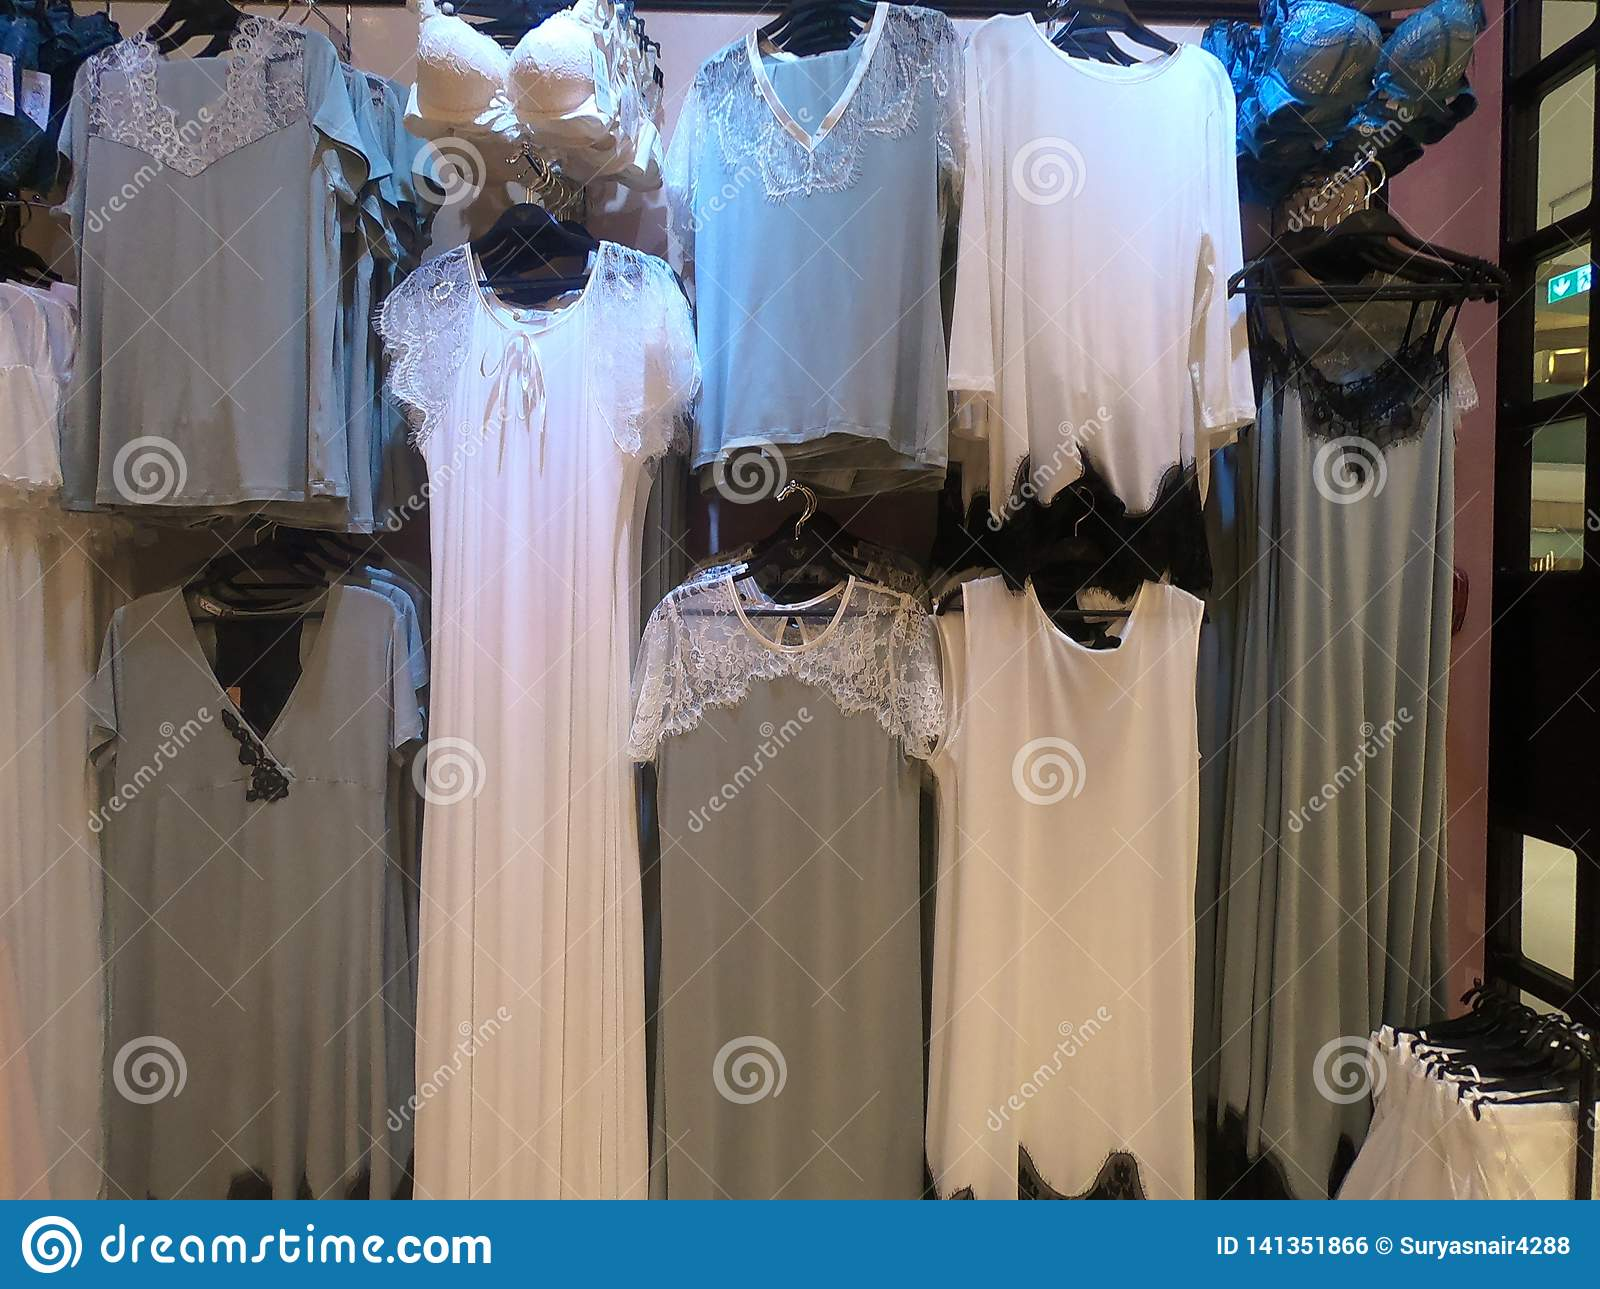 Women Lingerie Displayed on for Sale in a Boutique Store